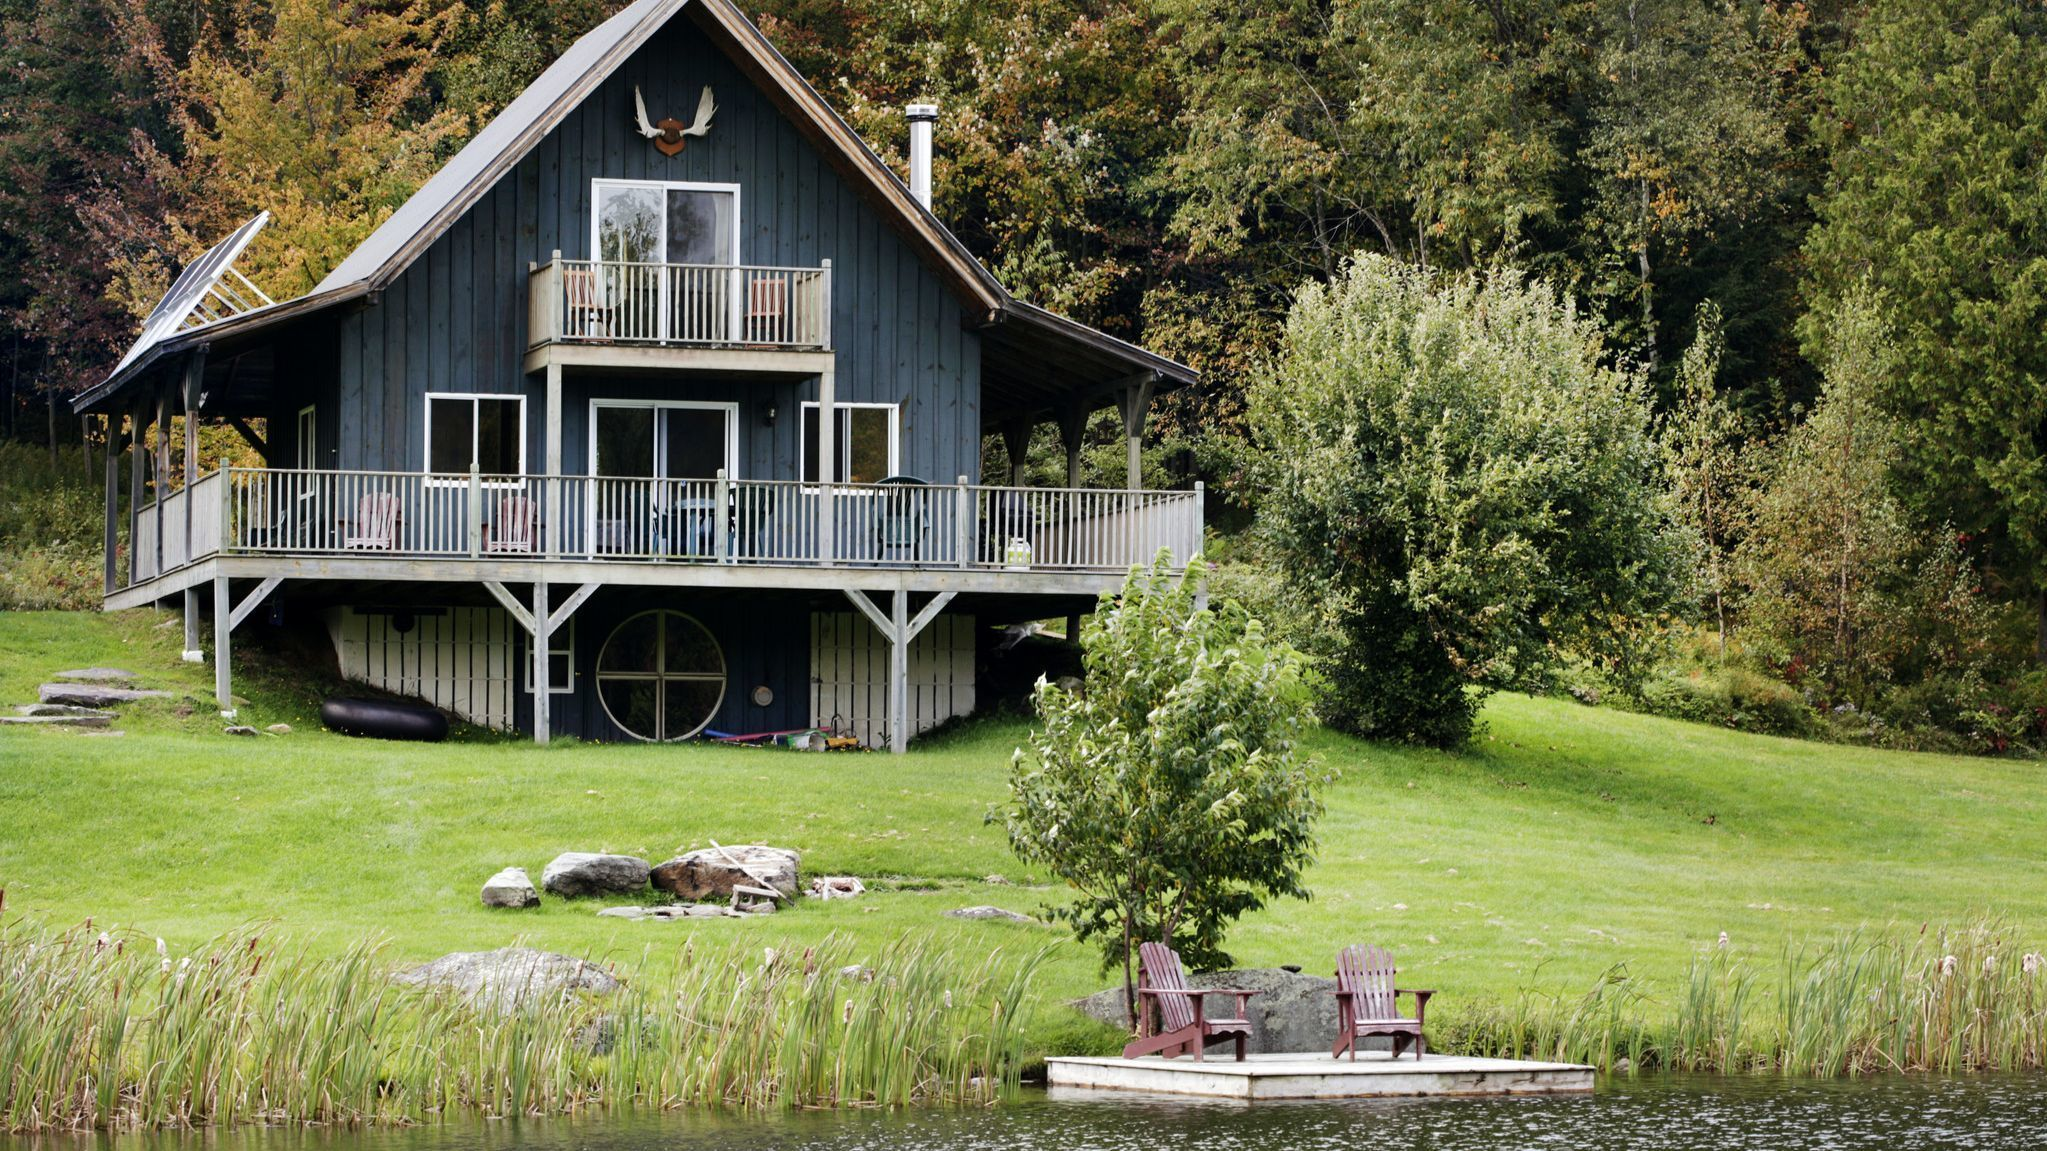 'I've seen ugly things': How to (peacefully) sell vacation property after a death in the family